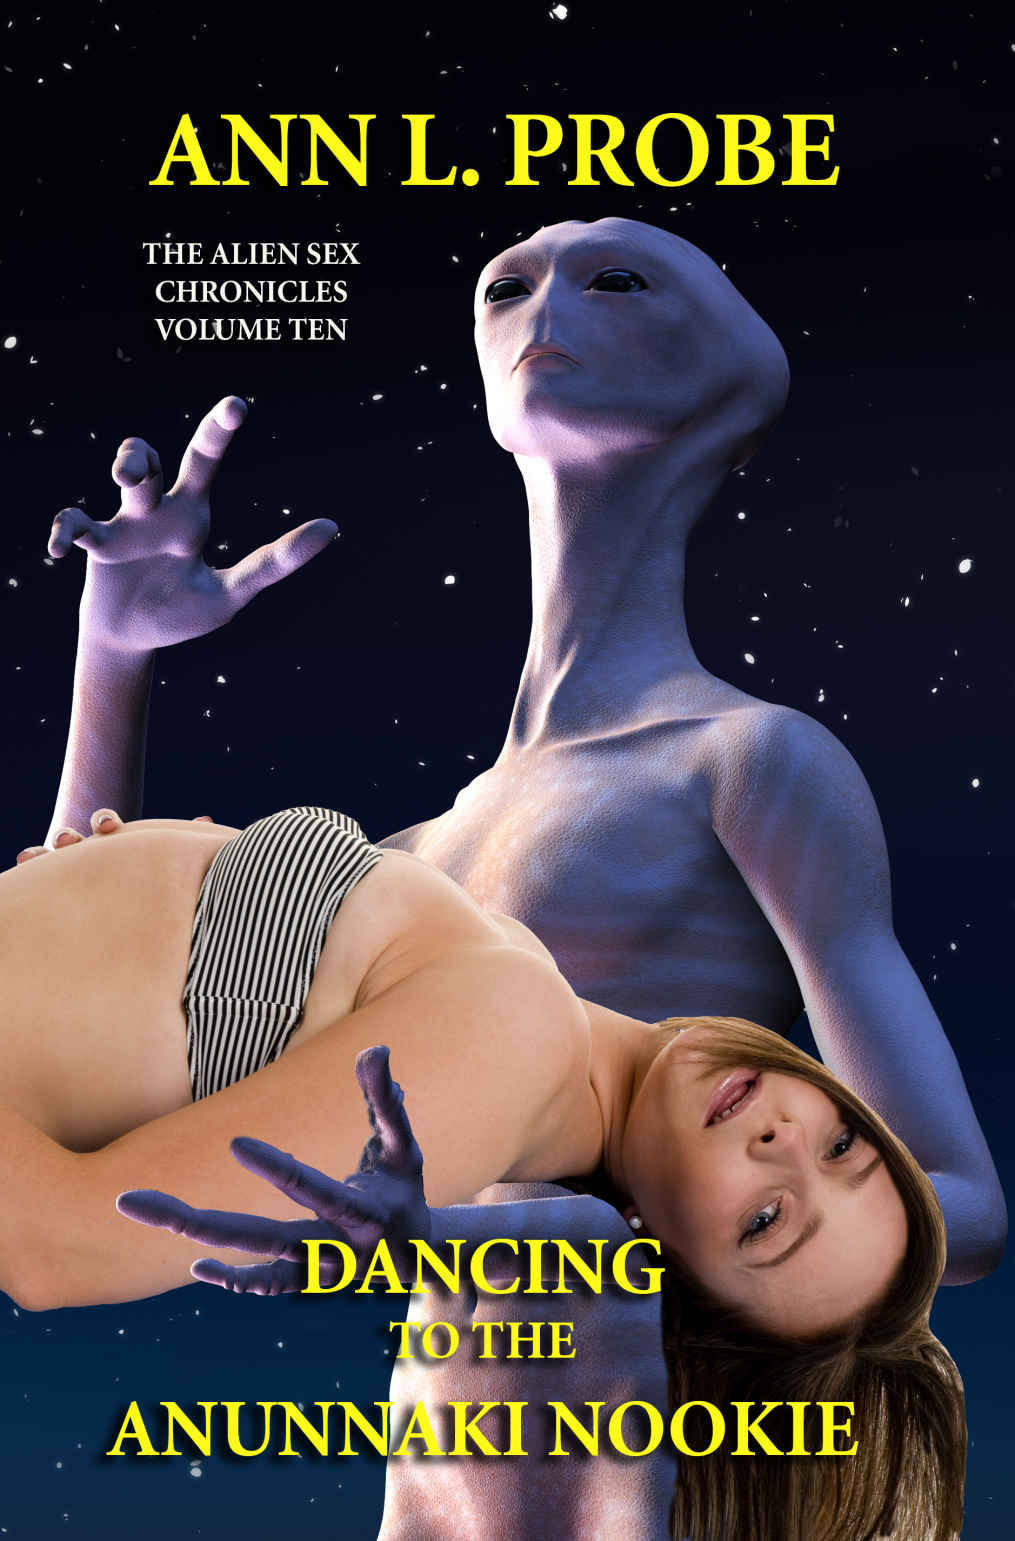 dancing to the anunnaki nookie ann l. probe